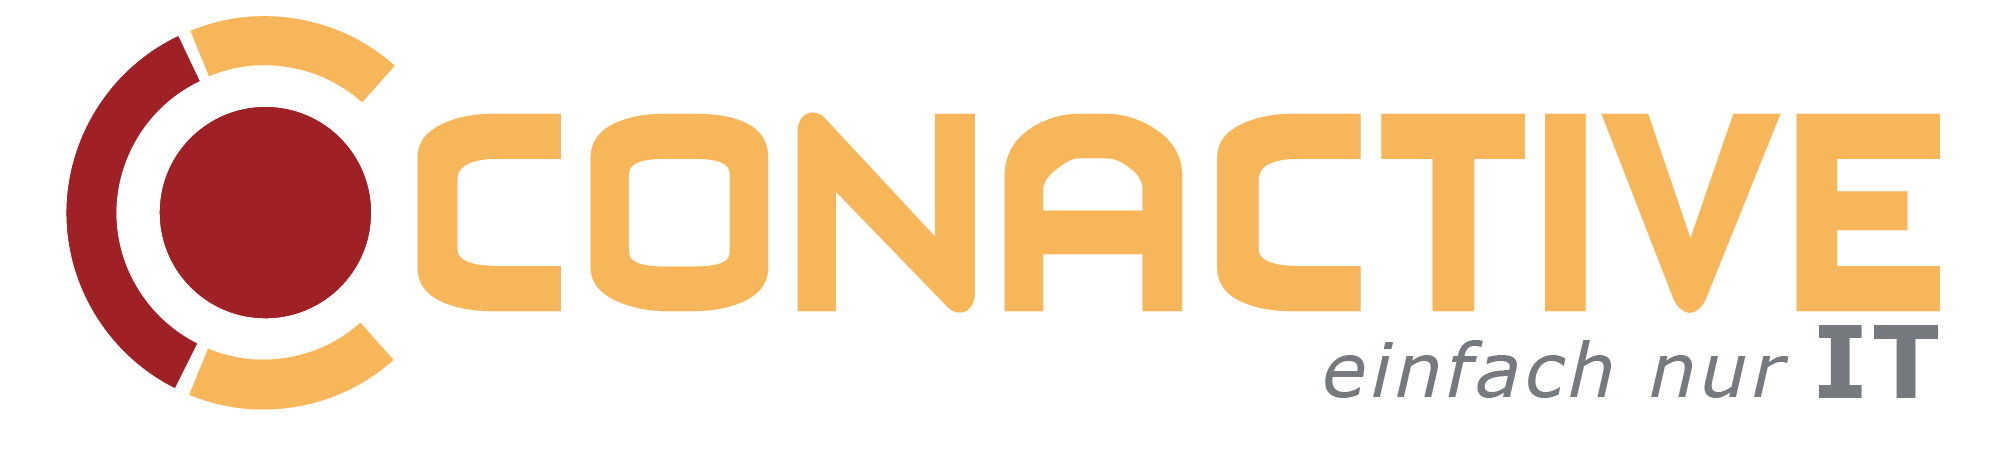 CON_Logo12_png_4.png